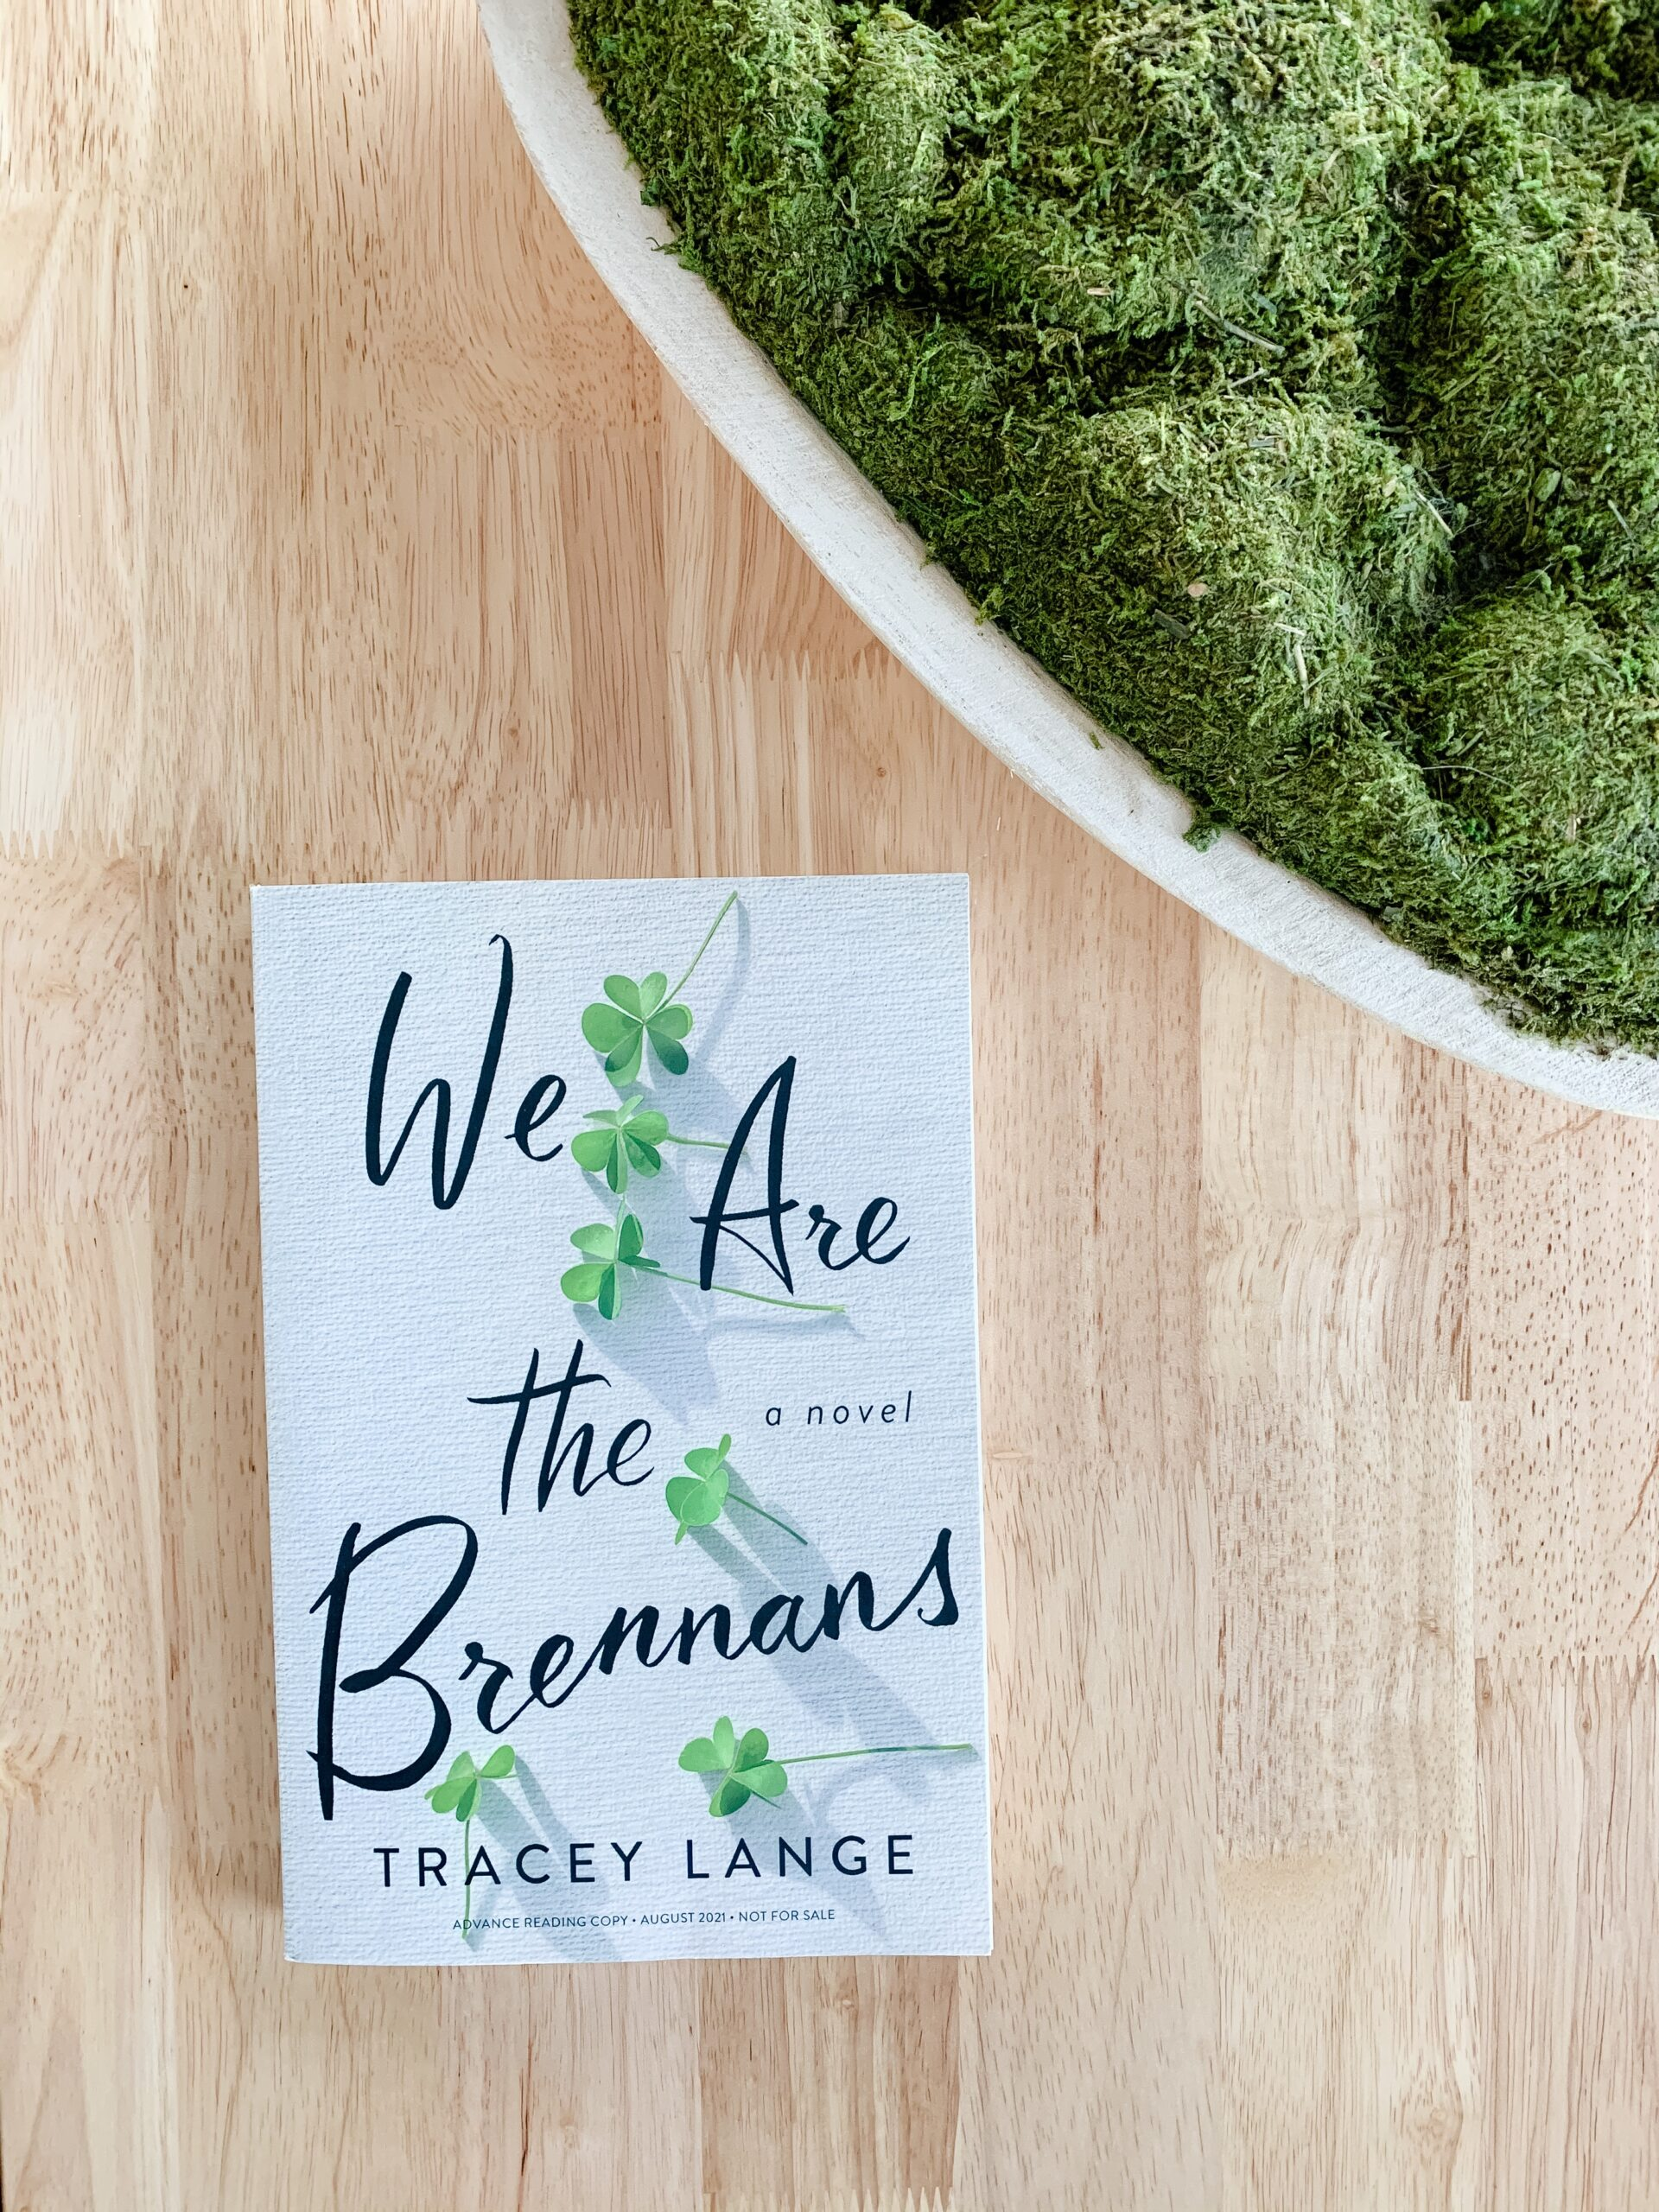 image of We Are the Brennans novel by Tracey Lange. Book is set on oak table with green moss.